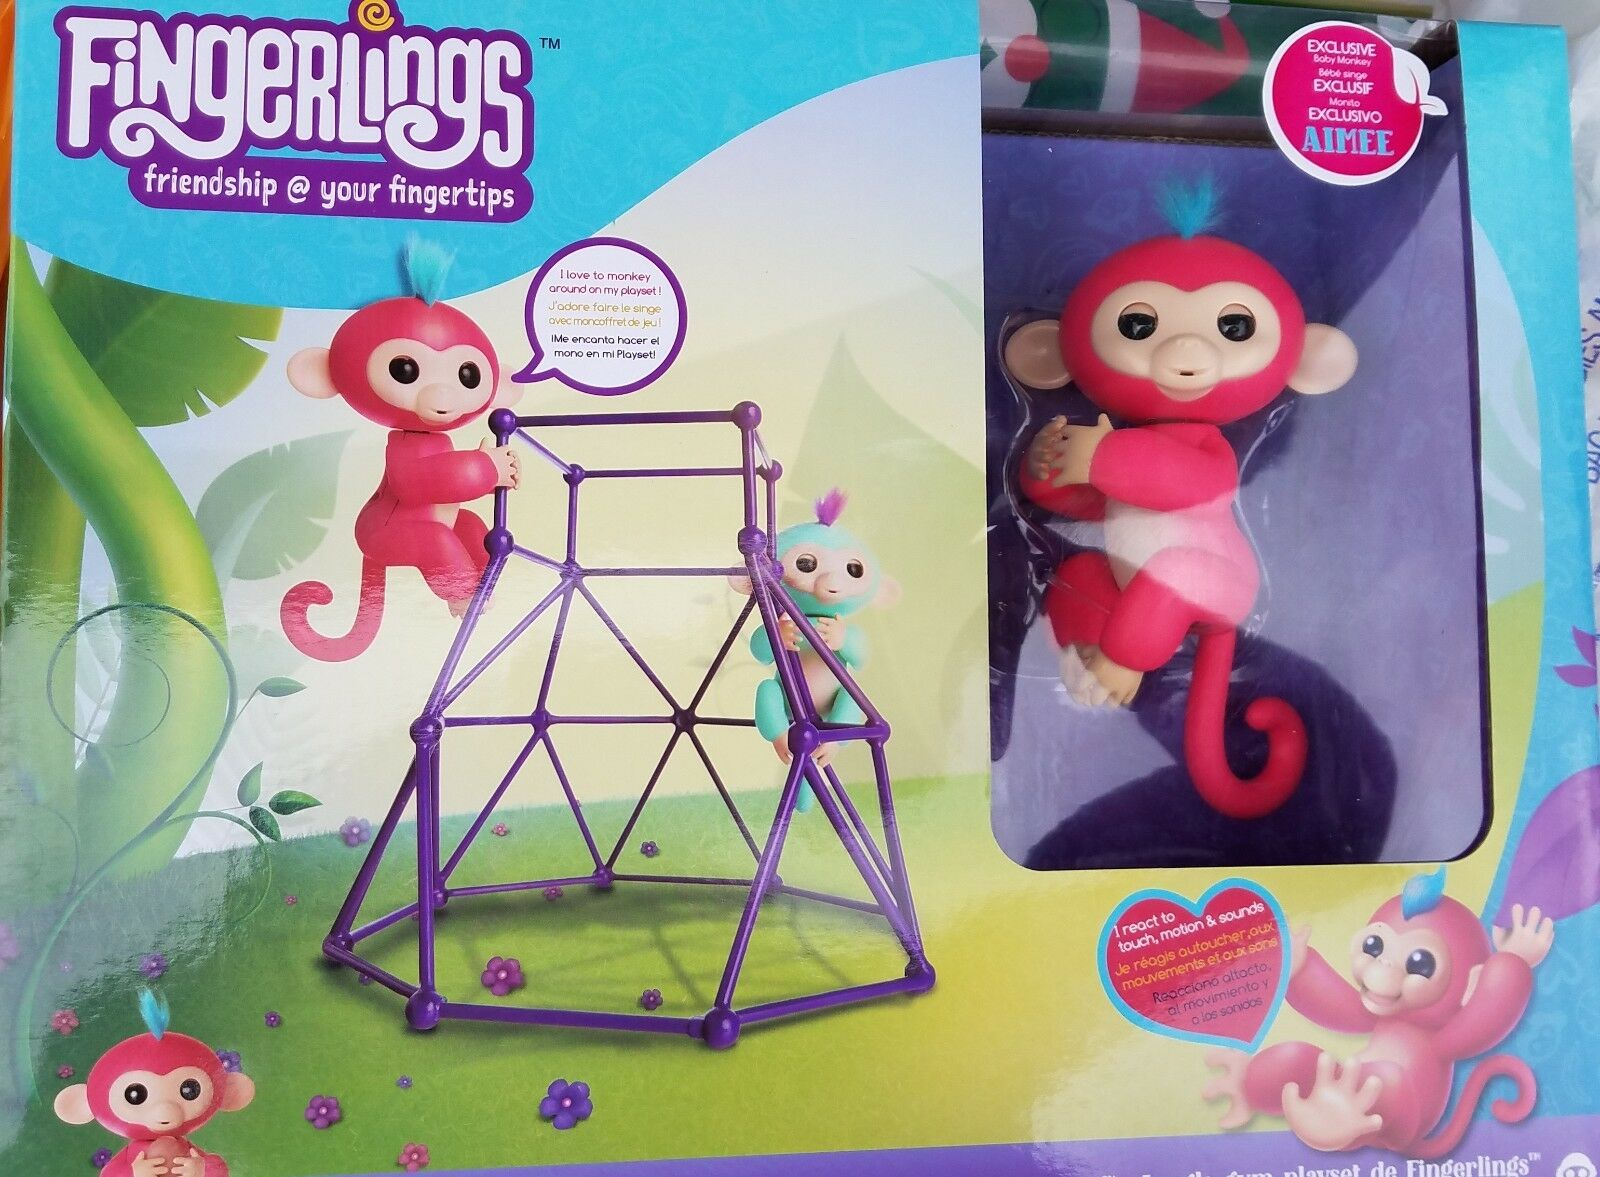 Authentic Wowwee Fingerling Exclusive Aimee with jungle gym set